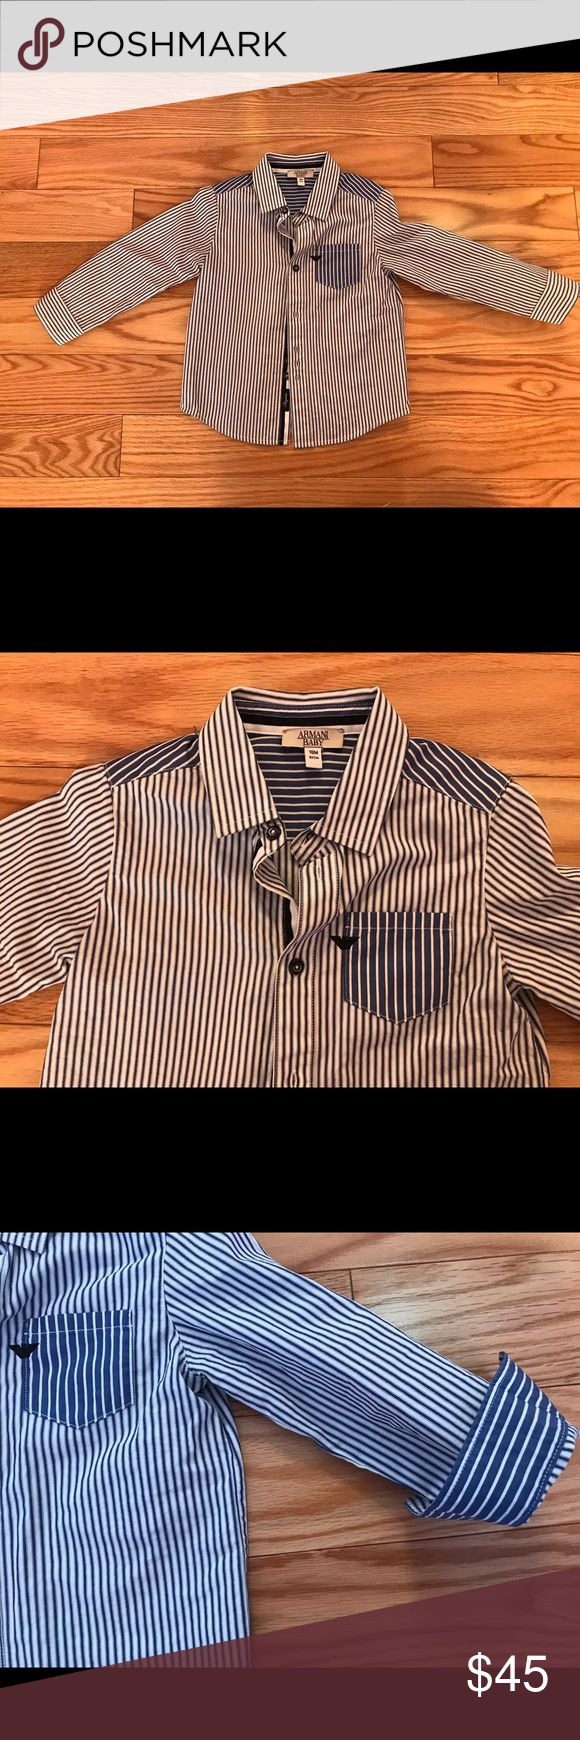 Armani baby boys dress shirt Dress shirt 82 cm Armani Junior Shirts & Tops Button Down Shirts